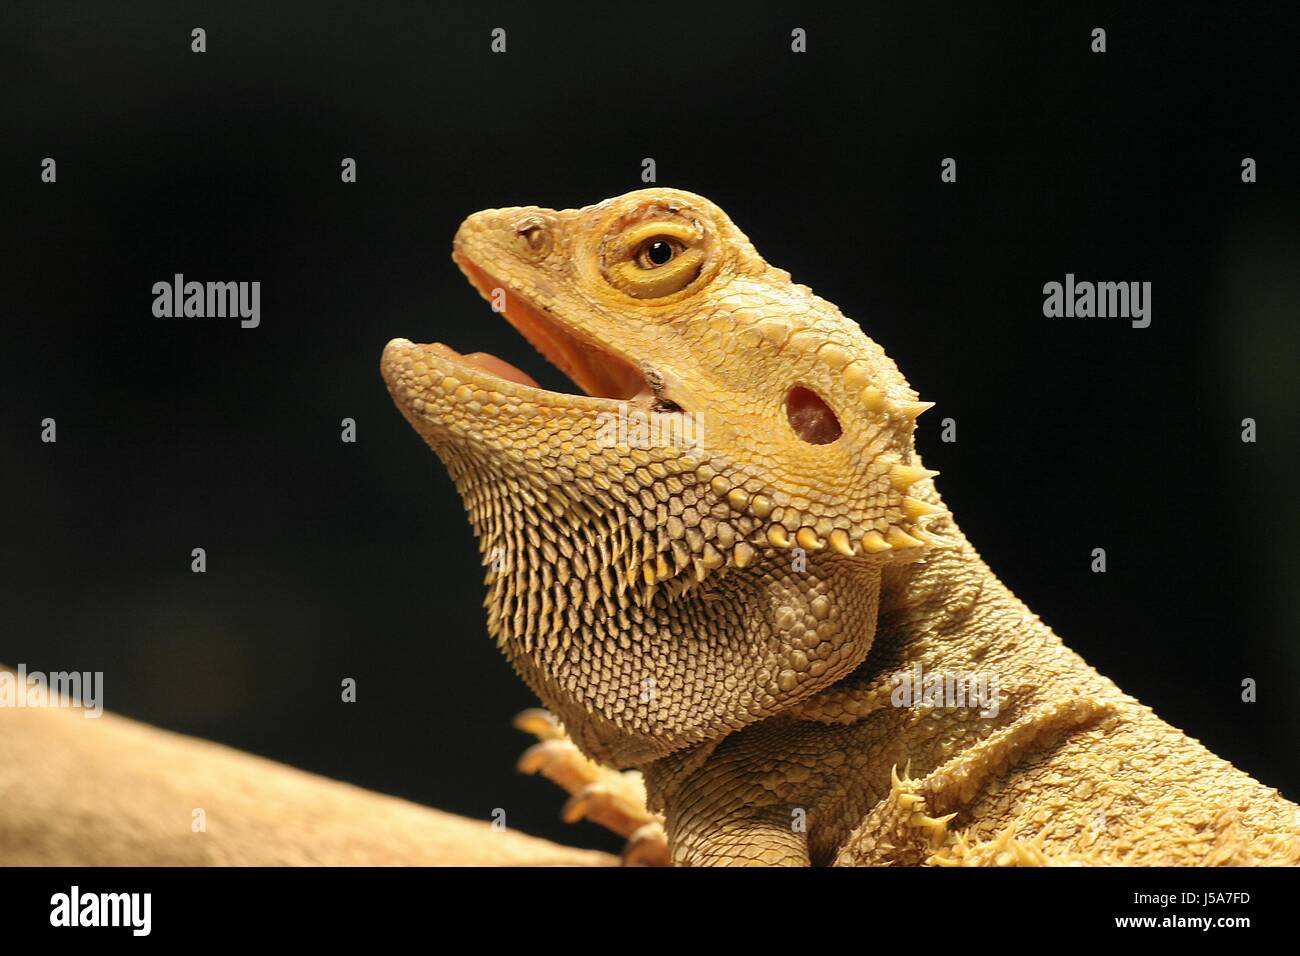 saurian,prickle,hovel,reptiles,archaic,bartagame,echsen,agamenstudie - Stock Image